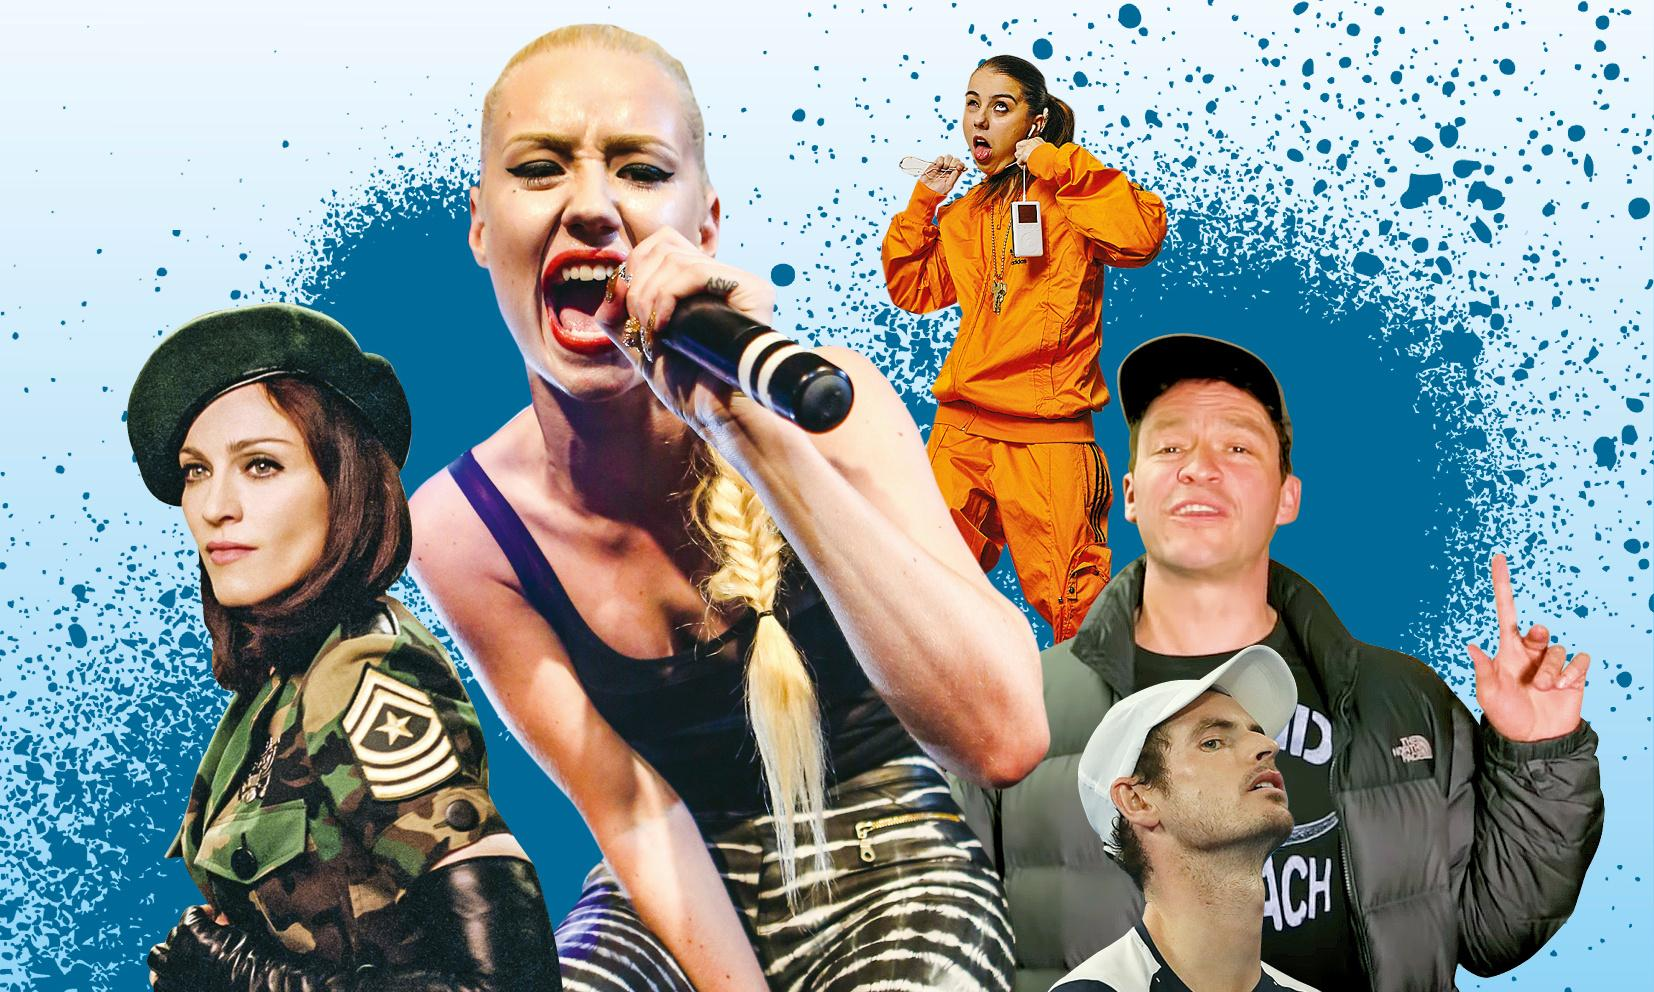 'Crack open them Twiglets so we can munch them like piglets': the 21st century's worst raps